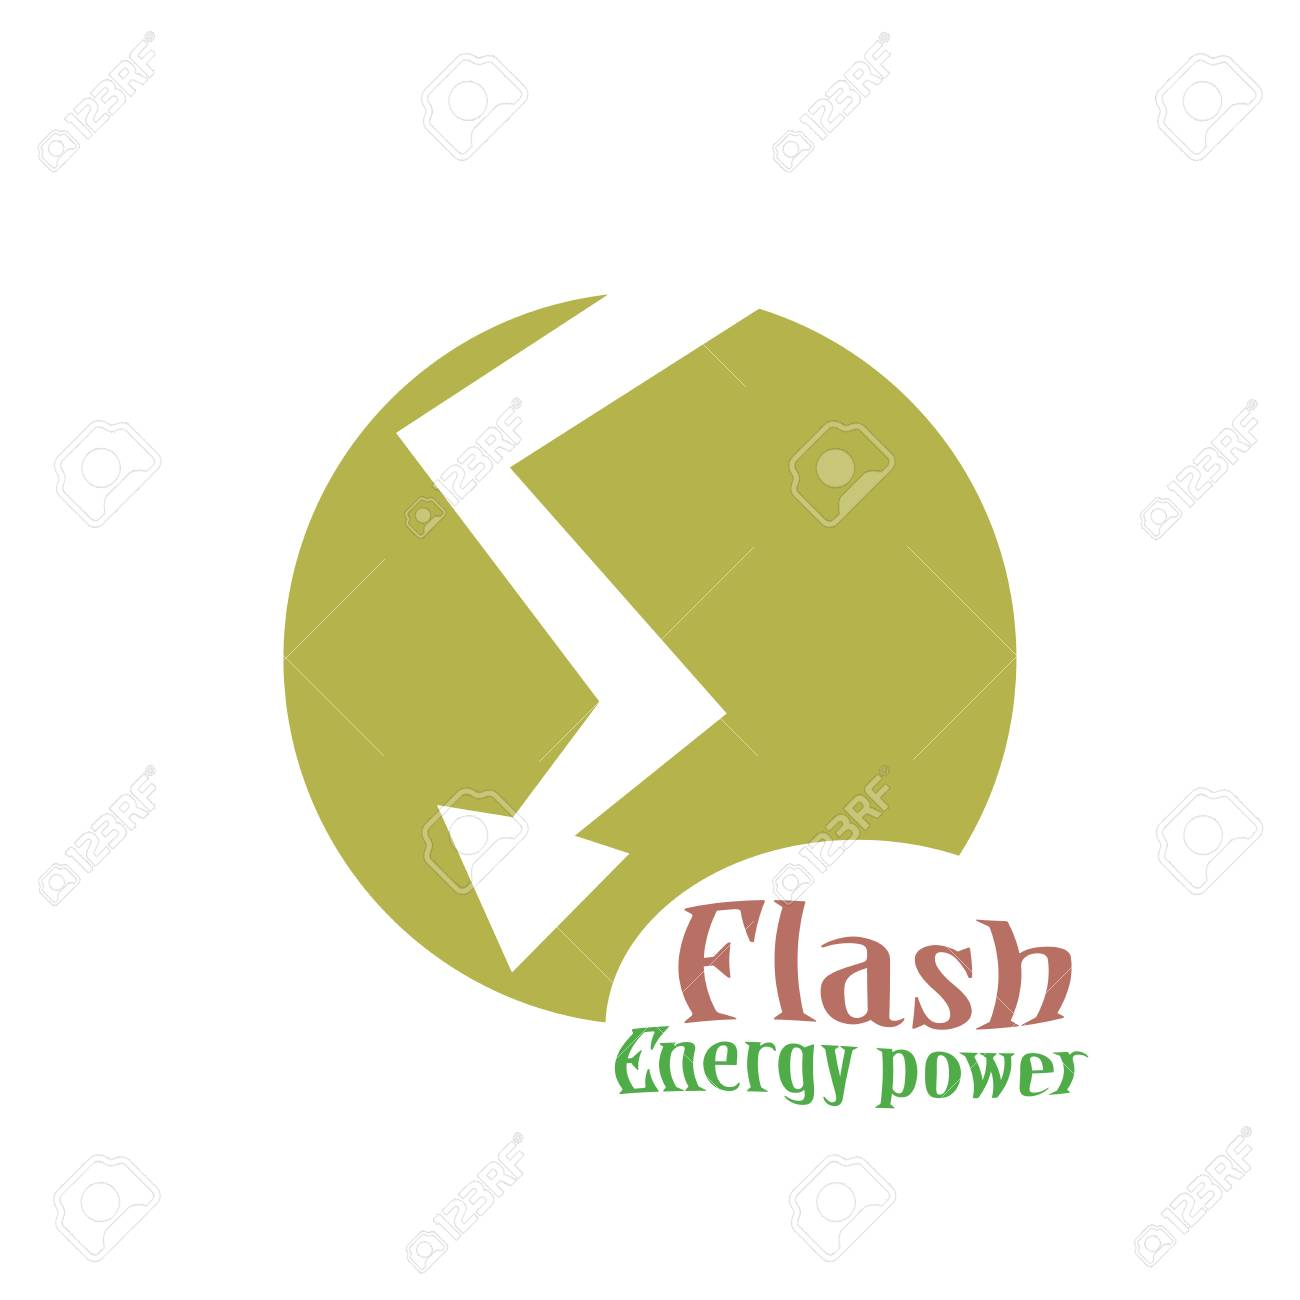 Lighting Bolt Flash Logo Design Template Fast Quick Rapid Icon Concept Symbol Thunderbolt Logotype